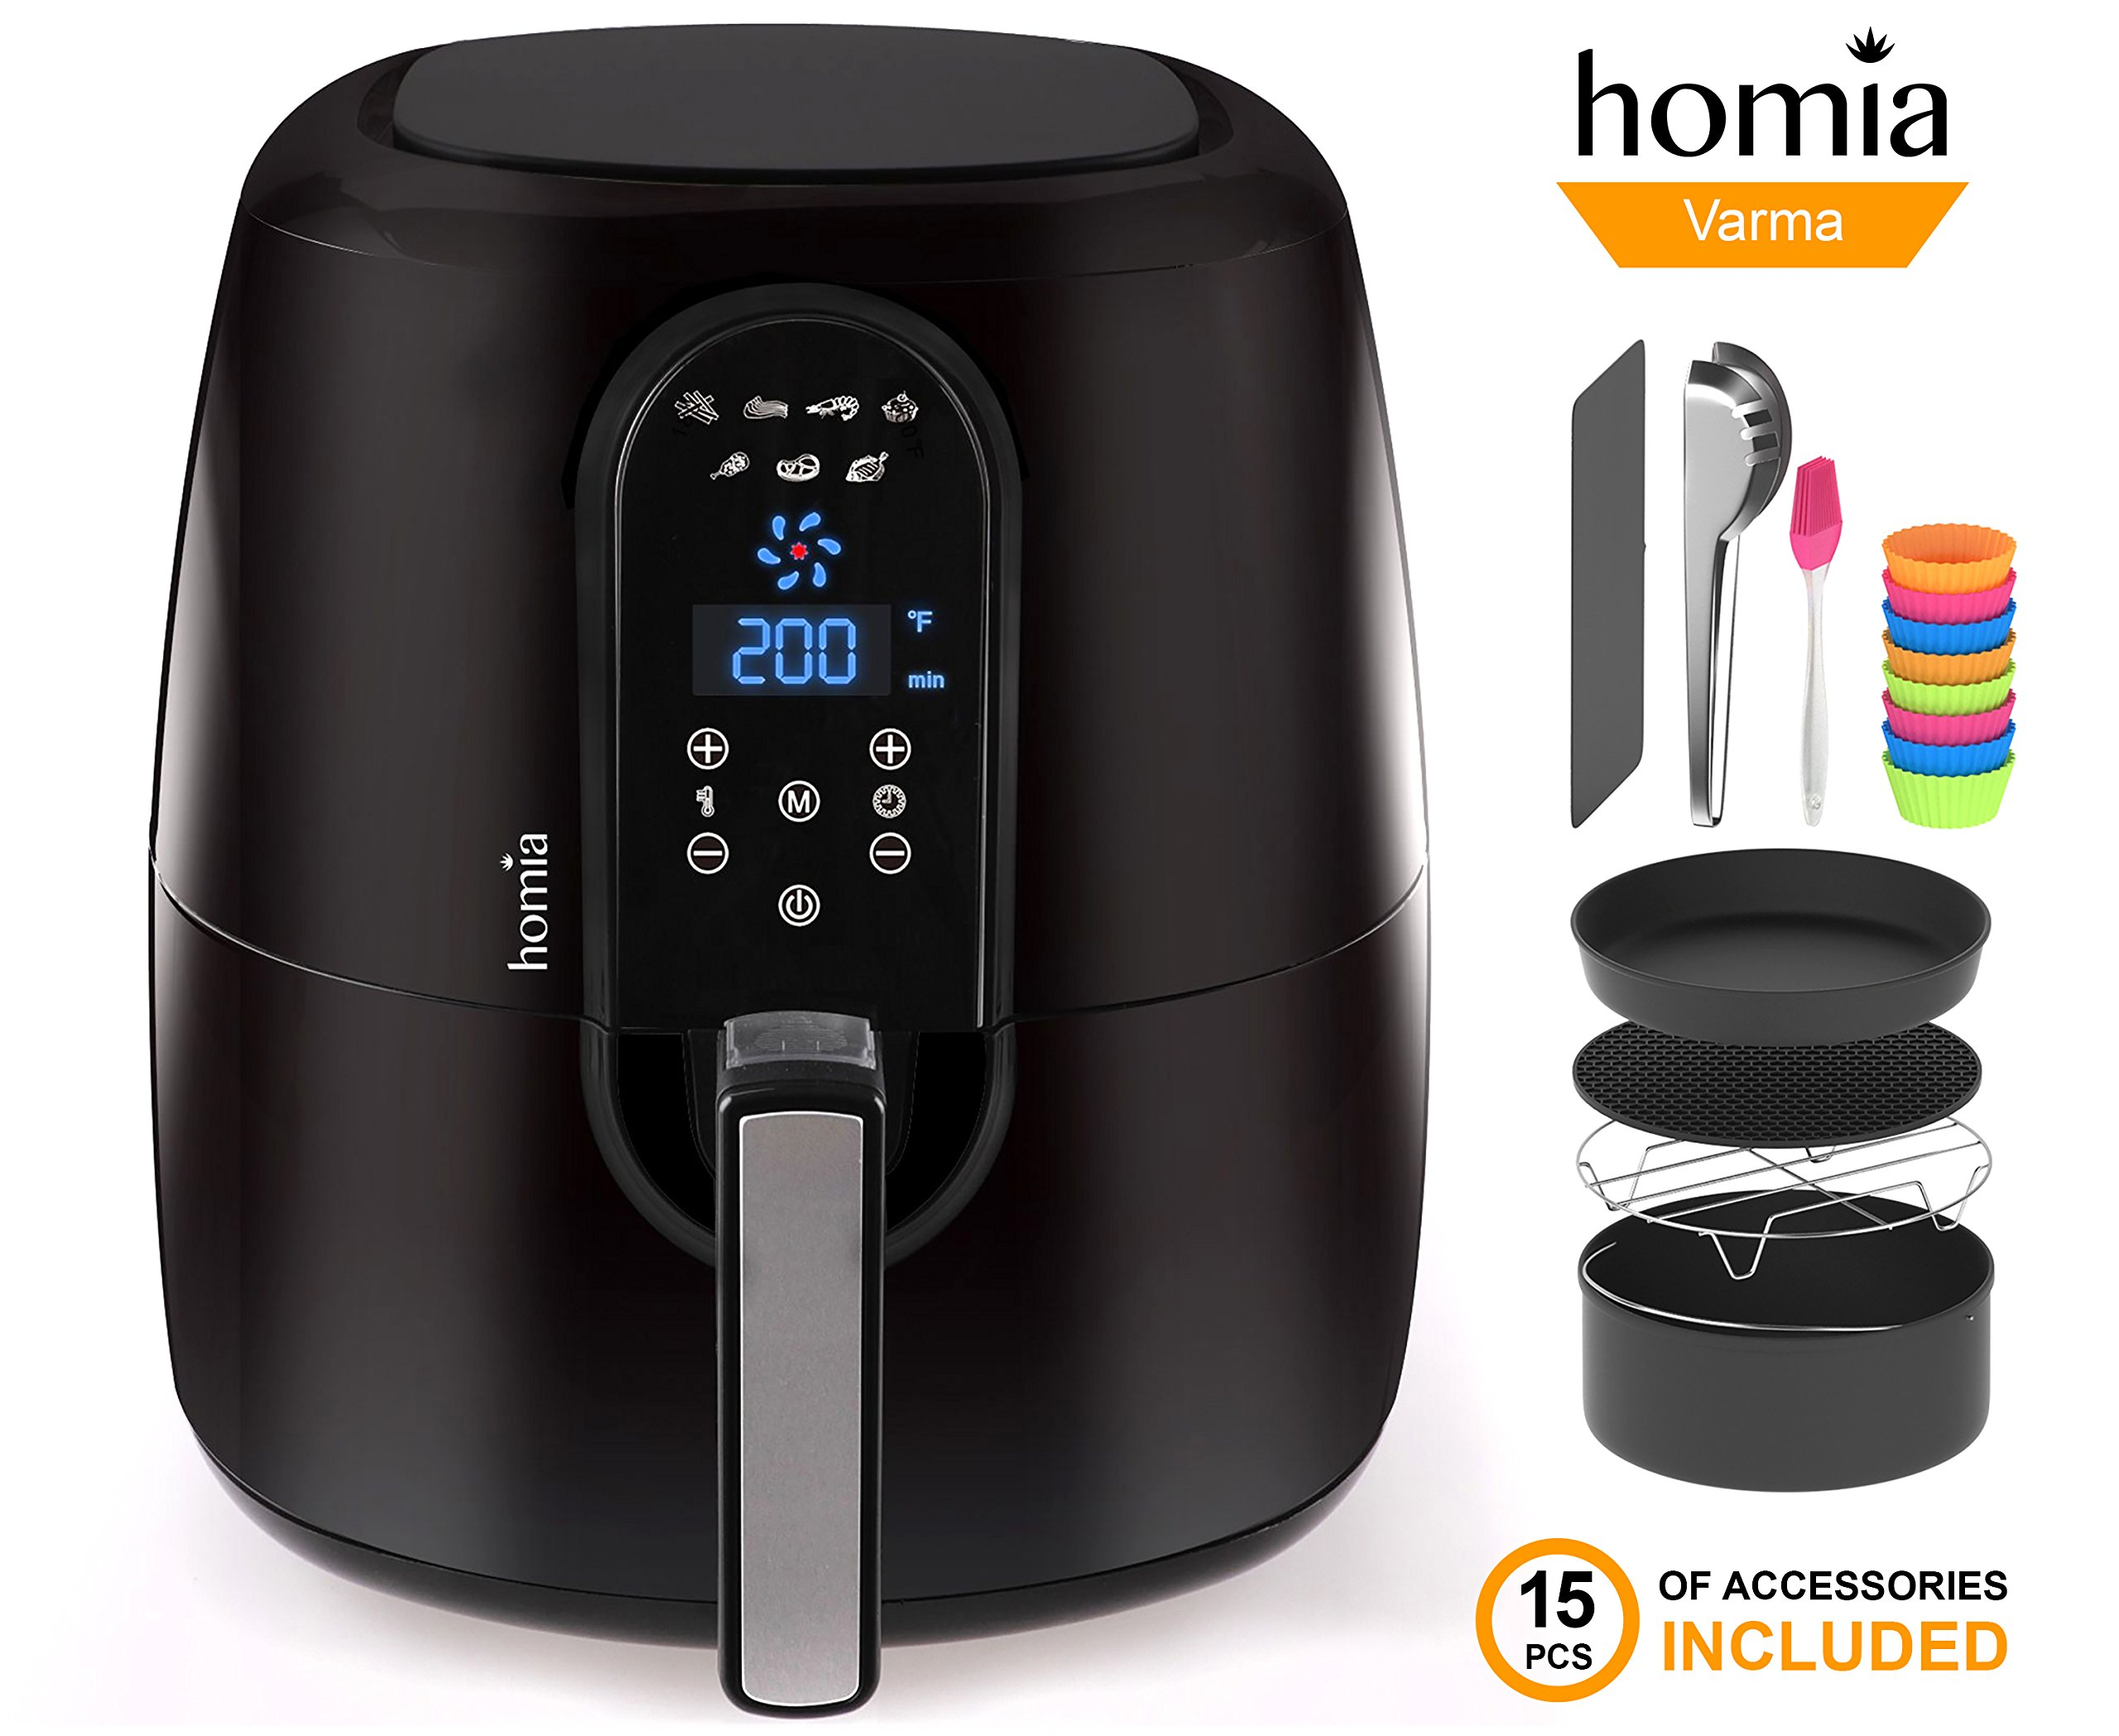 Automatic Electric Hot Air Fryer for Oilless Low-Fat Healthy Cooking - Large 5.2 L (5.5 Qt) Capacity - 1800W with Touch Panel - Free Accessory Set and Online Recipe Book - Fry - Roast - Bake - Grill